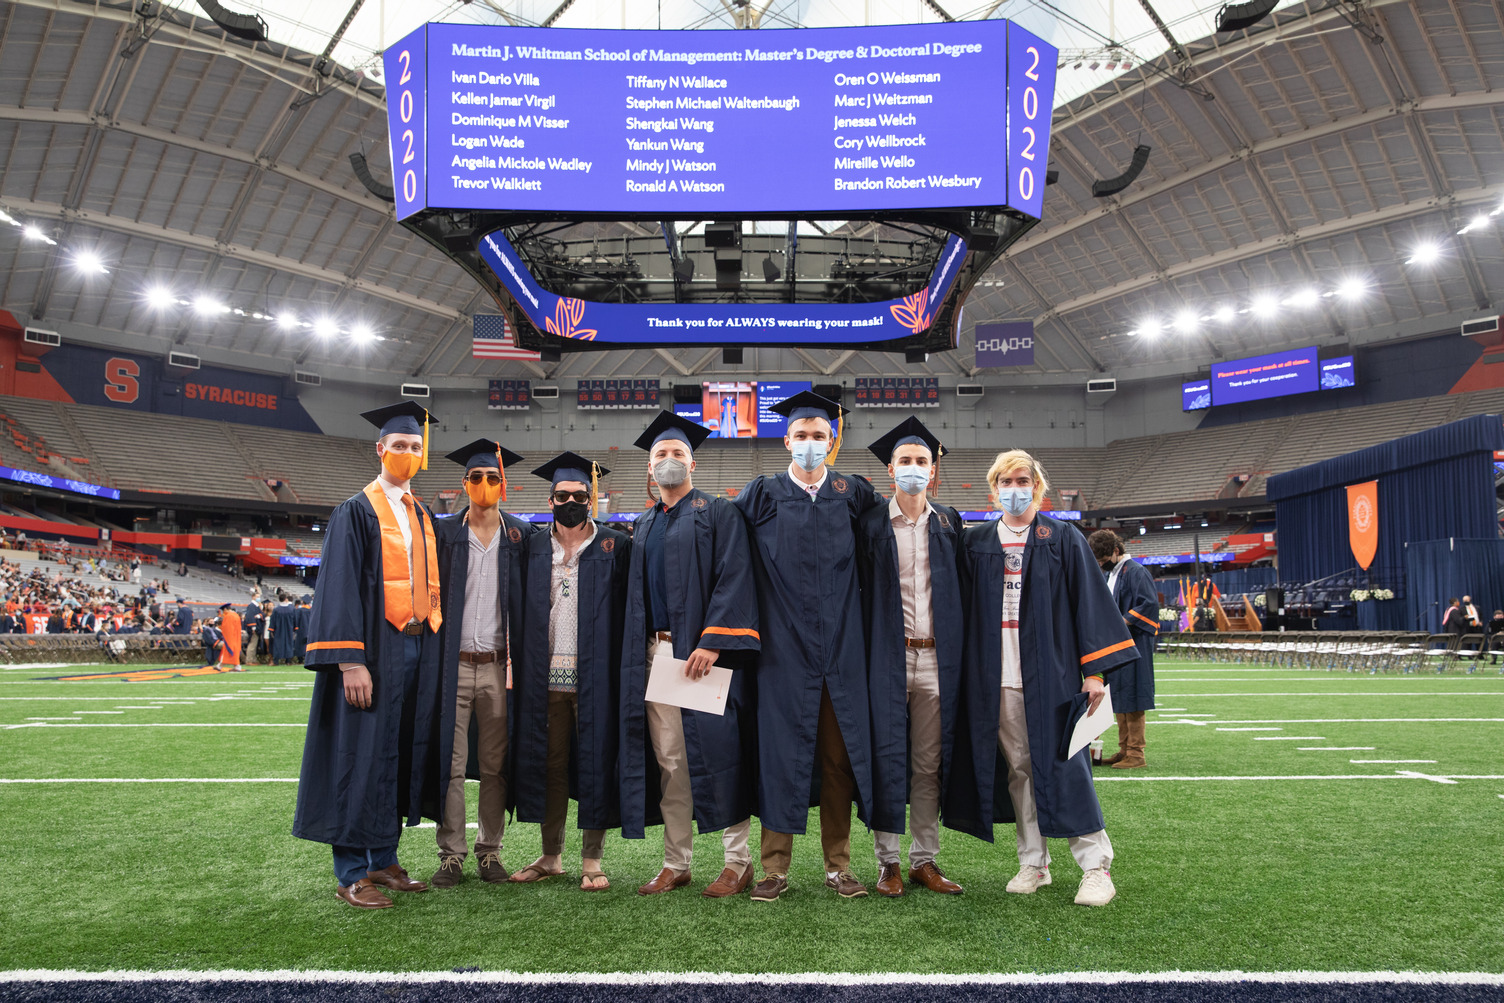 a group of seven participants in Commencement 2020 on the field of the stadium